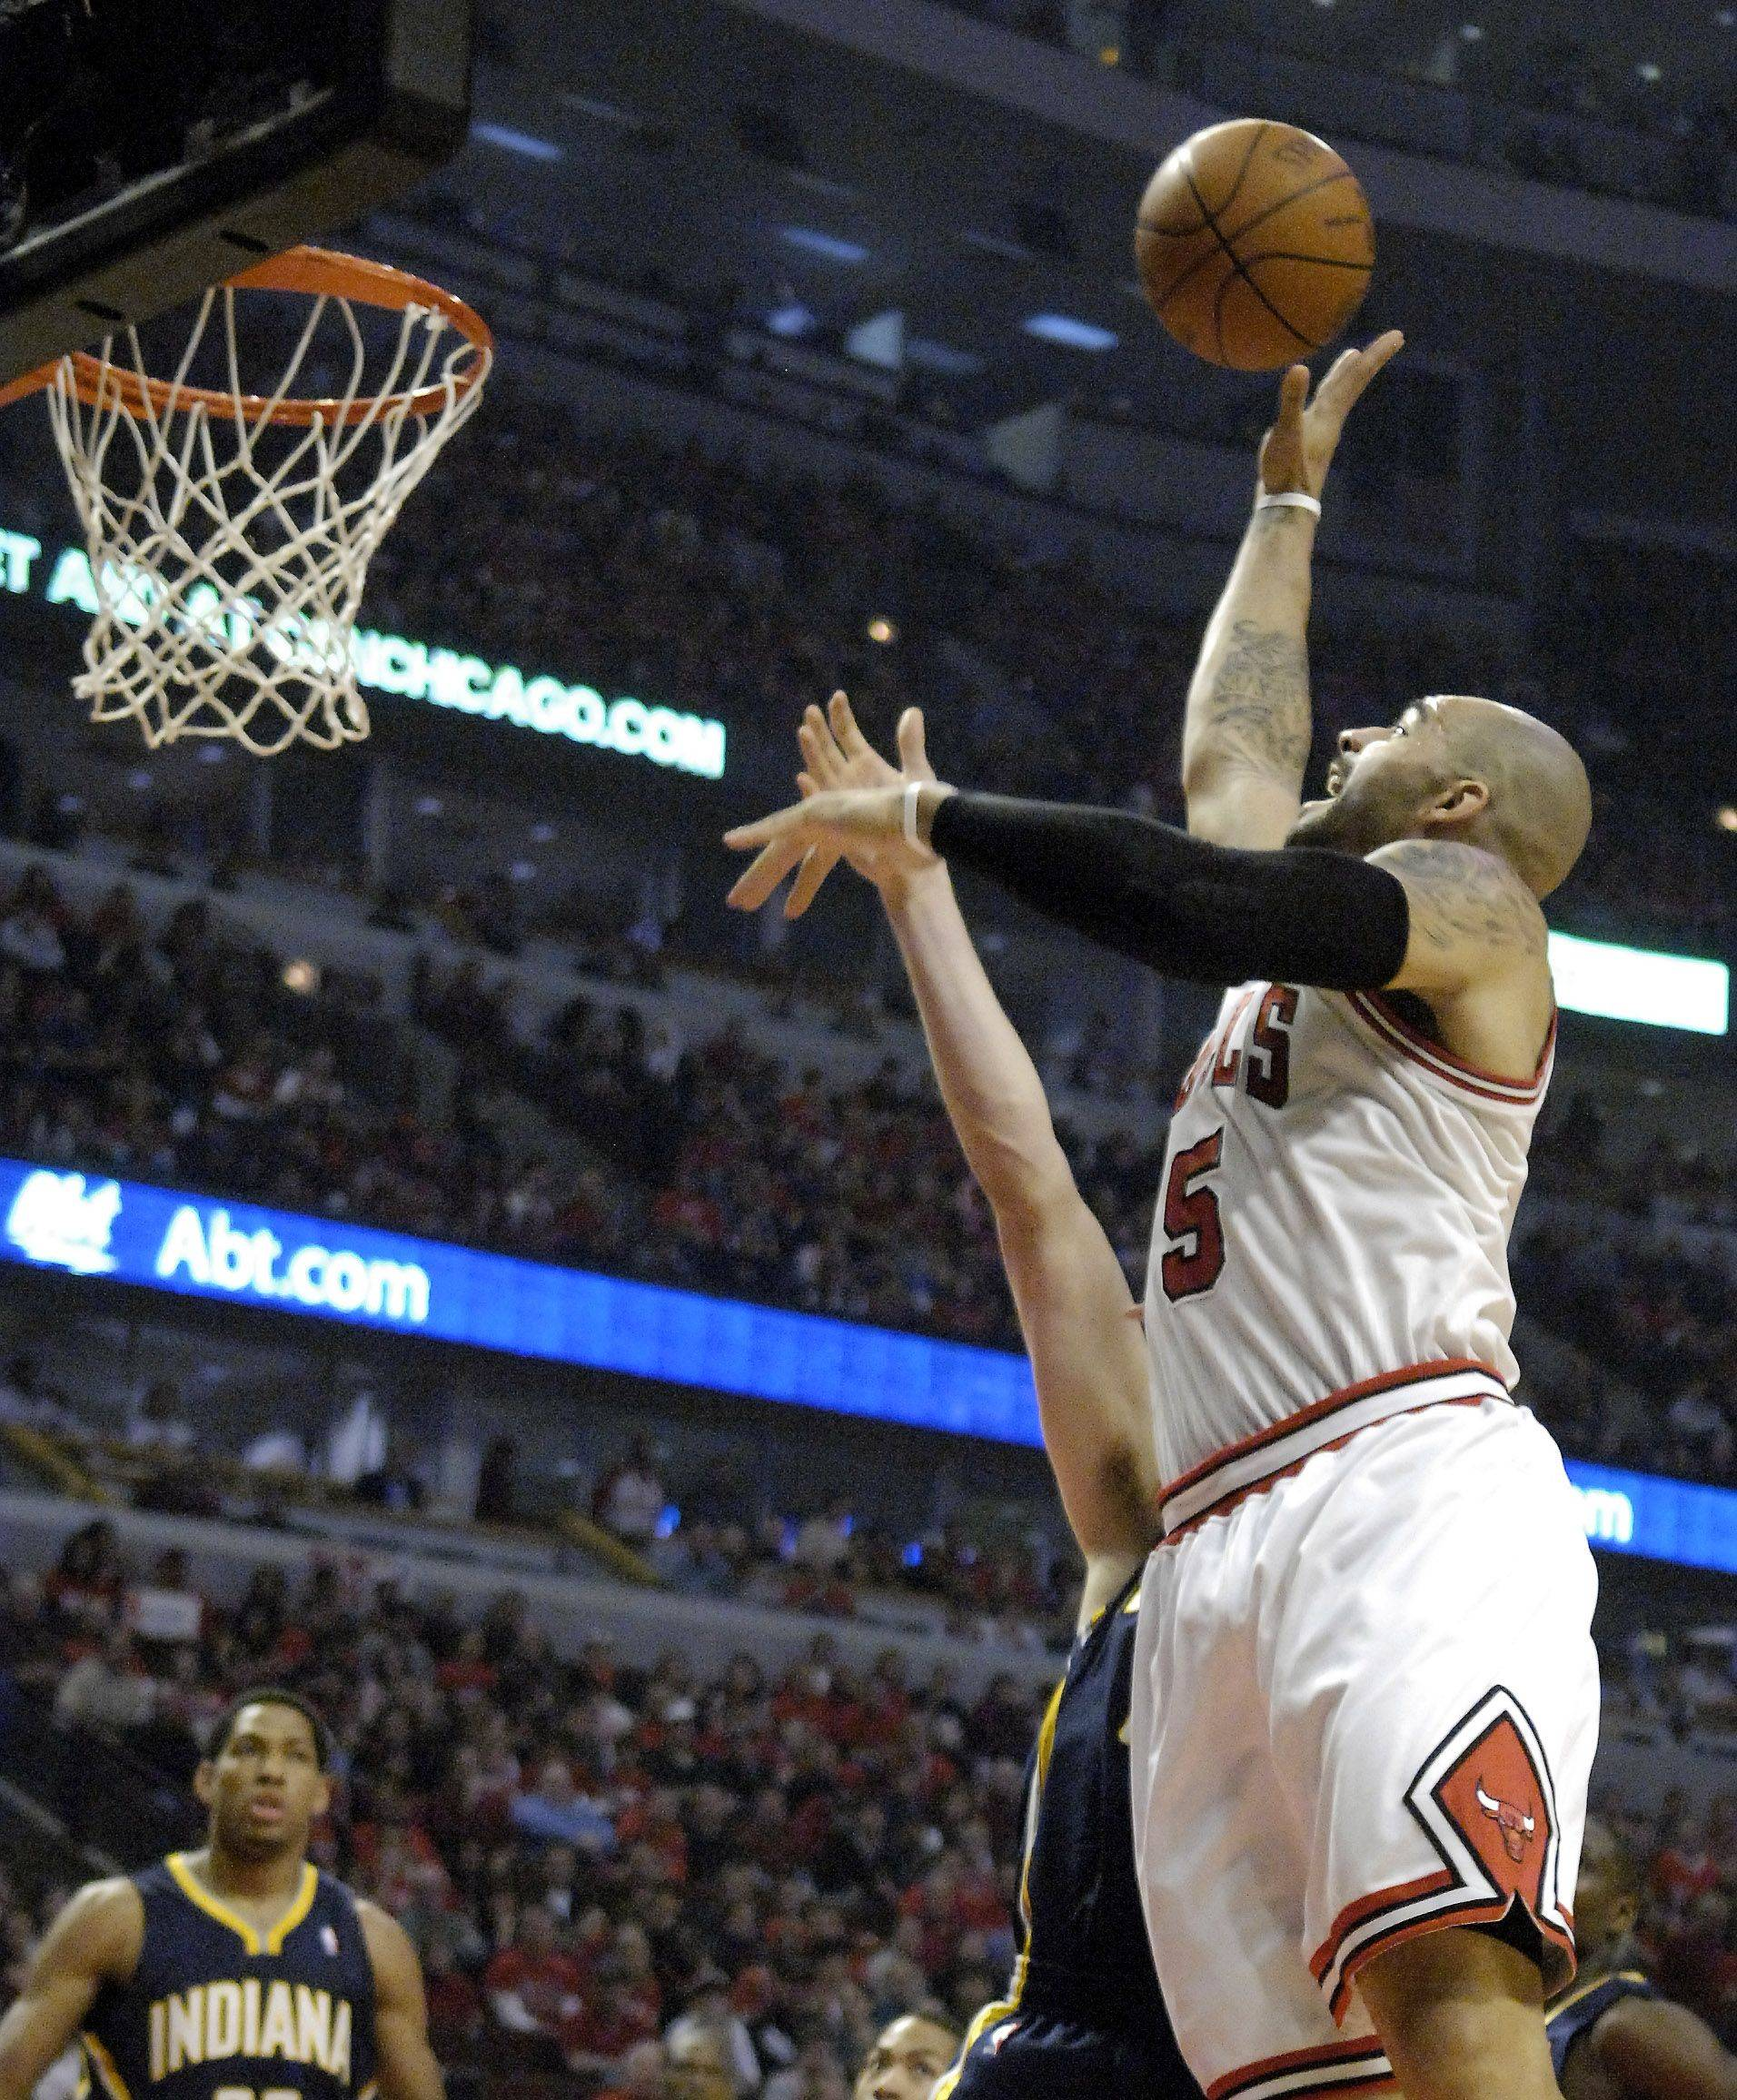 Chicago Bulls power forward Carlos Boozer (5) puts up a shot during Game One of the NBA Eastern Conference Quarterfinals Saturday at the United Center in Chicago.